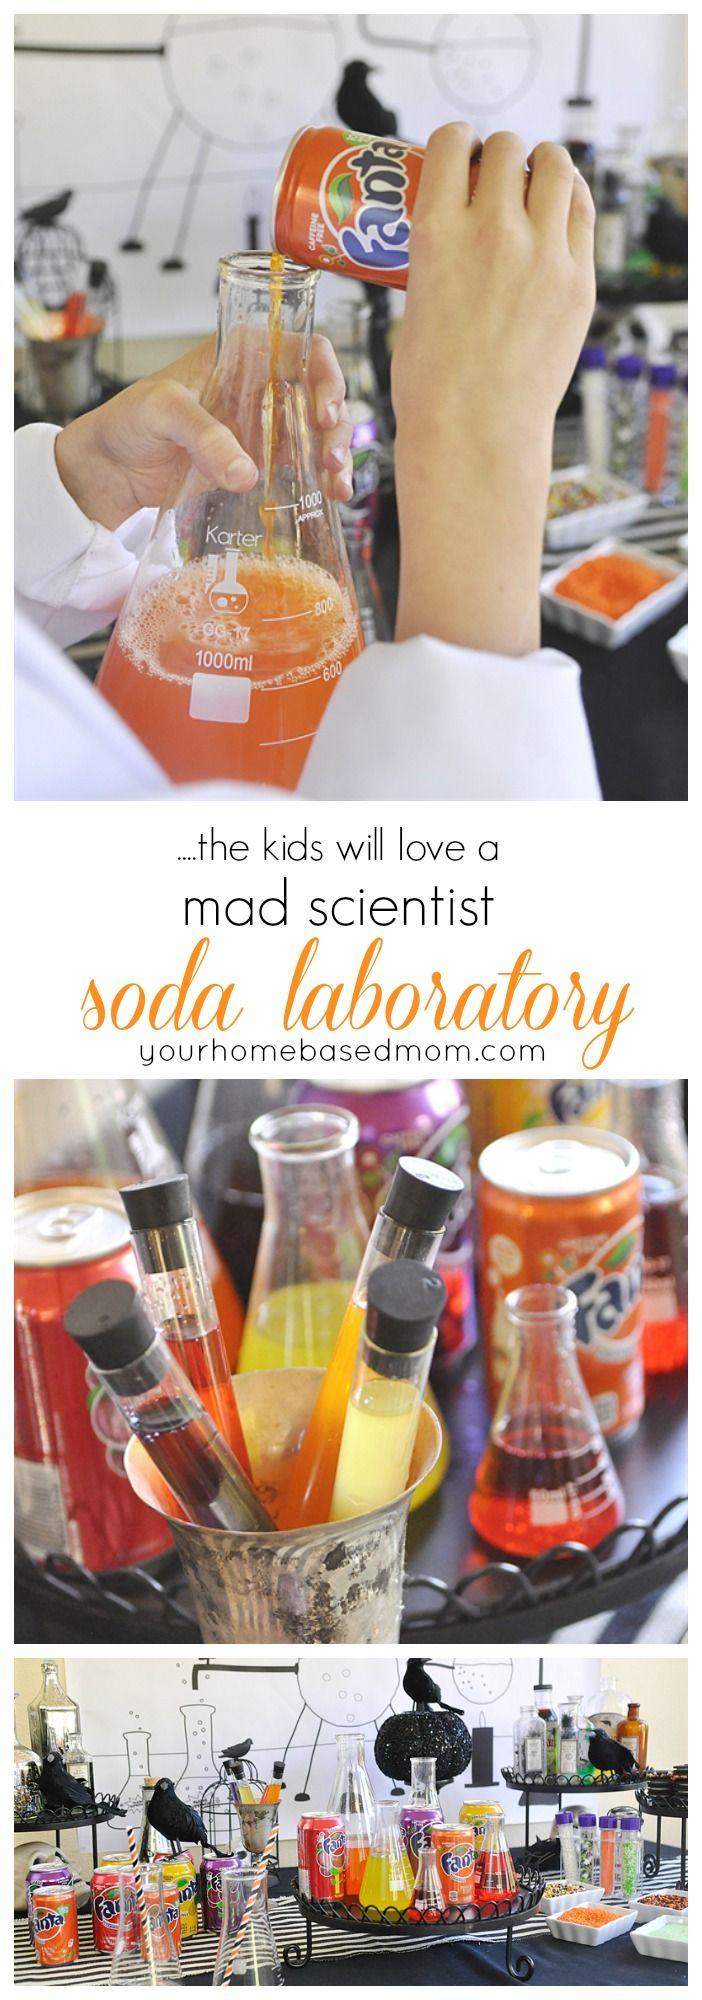 Best 25+ Mad scientist lab ideas on Pinterest | Mad scientist ...